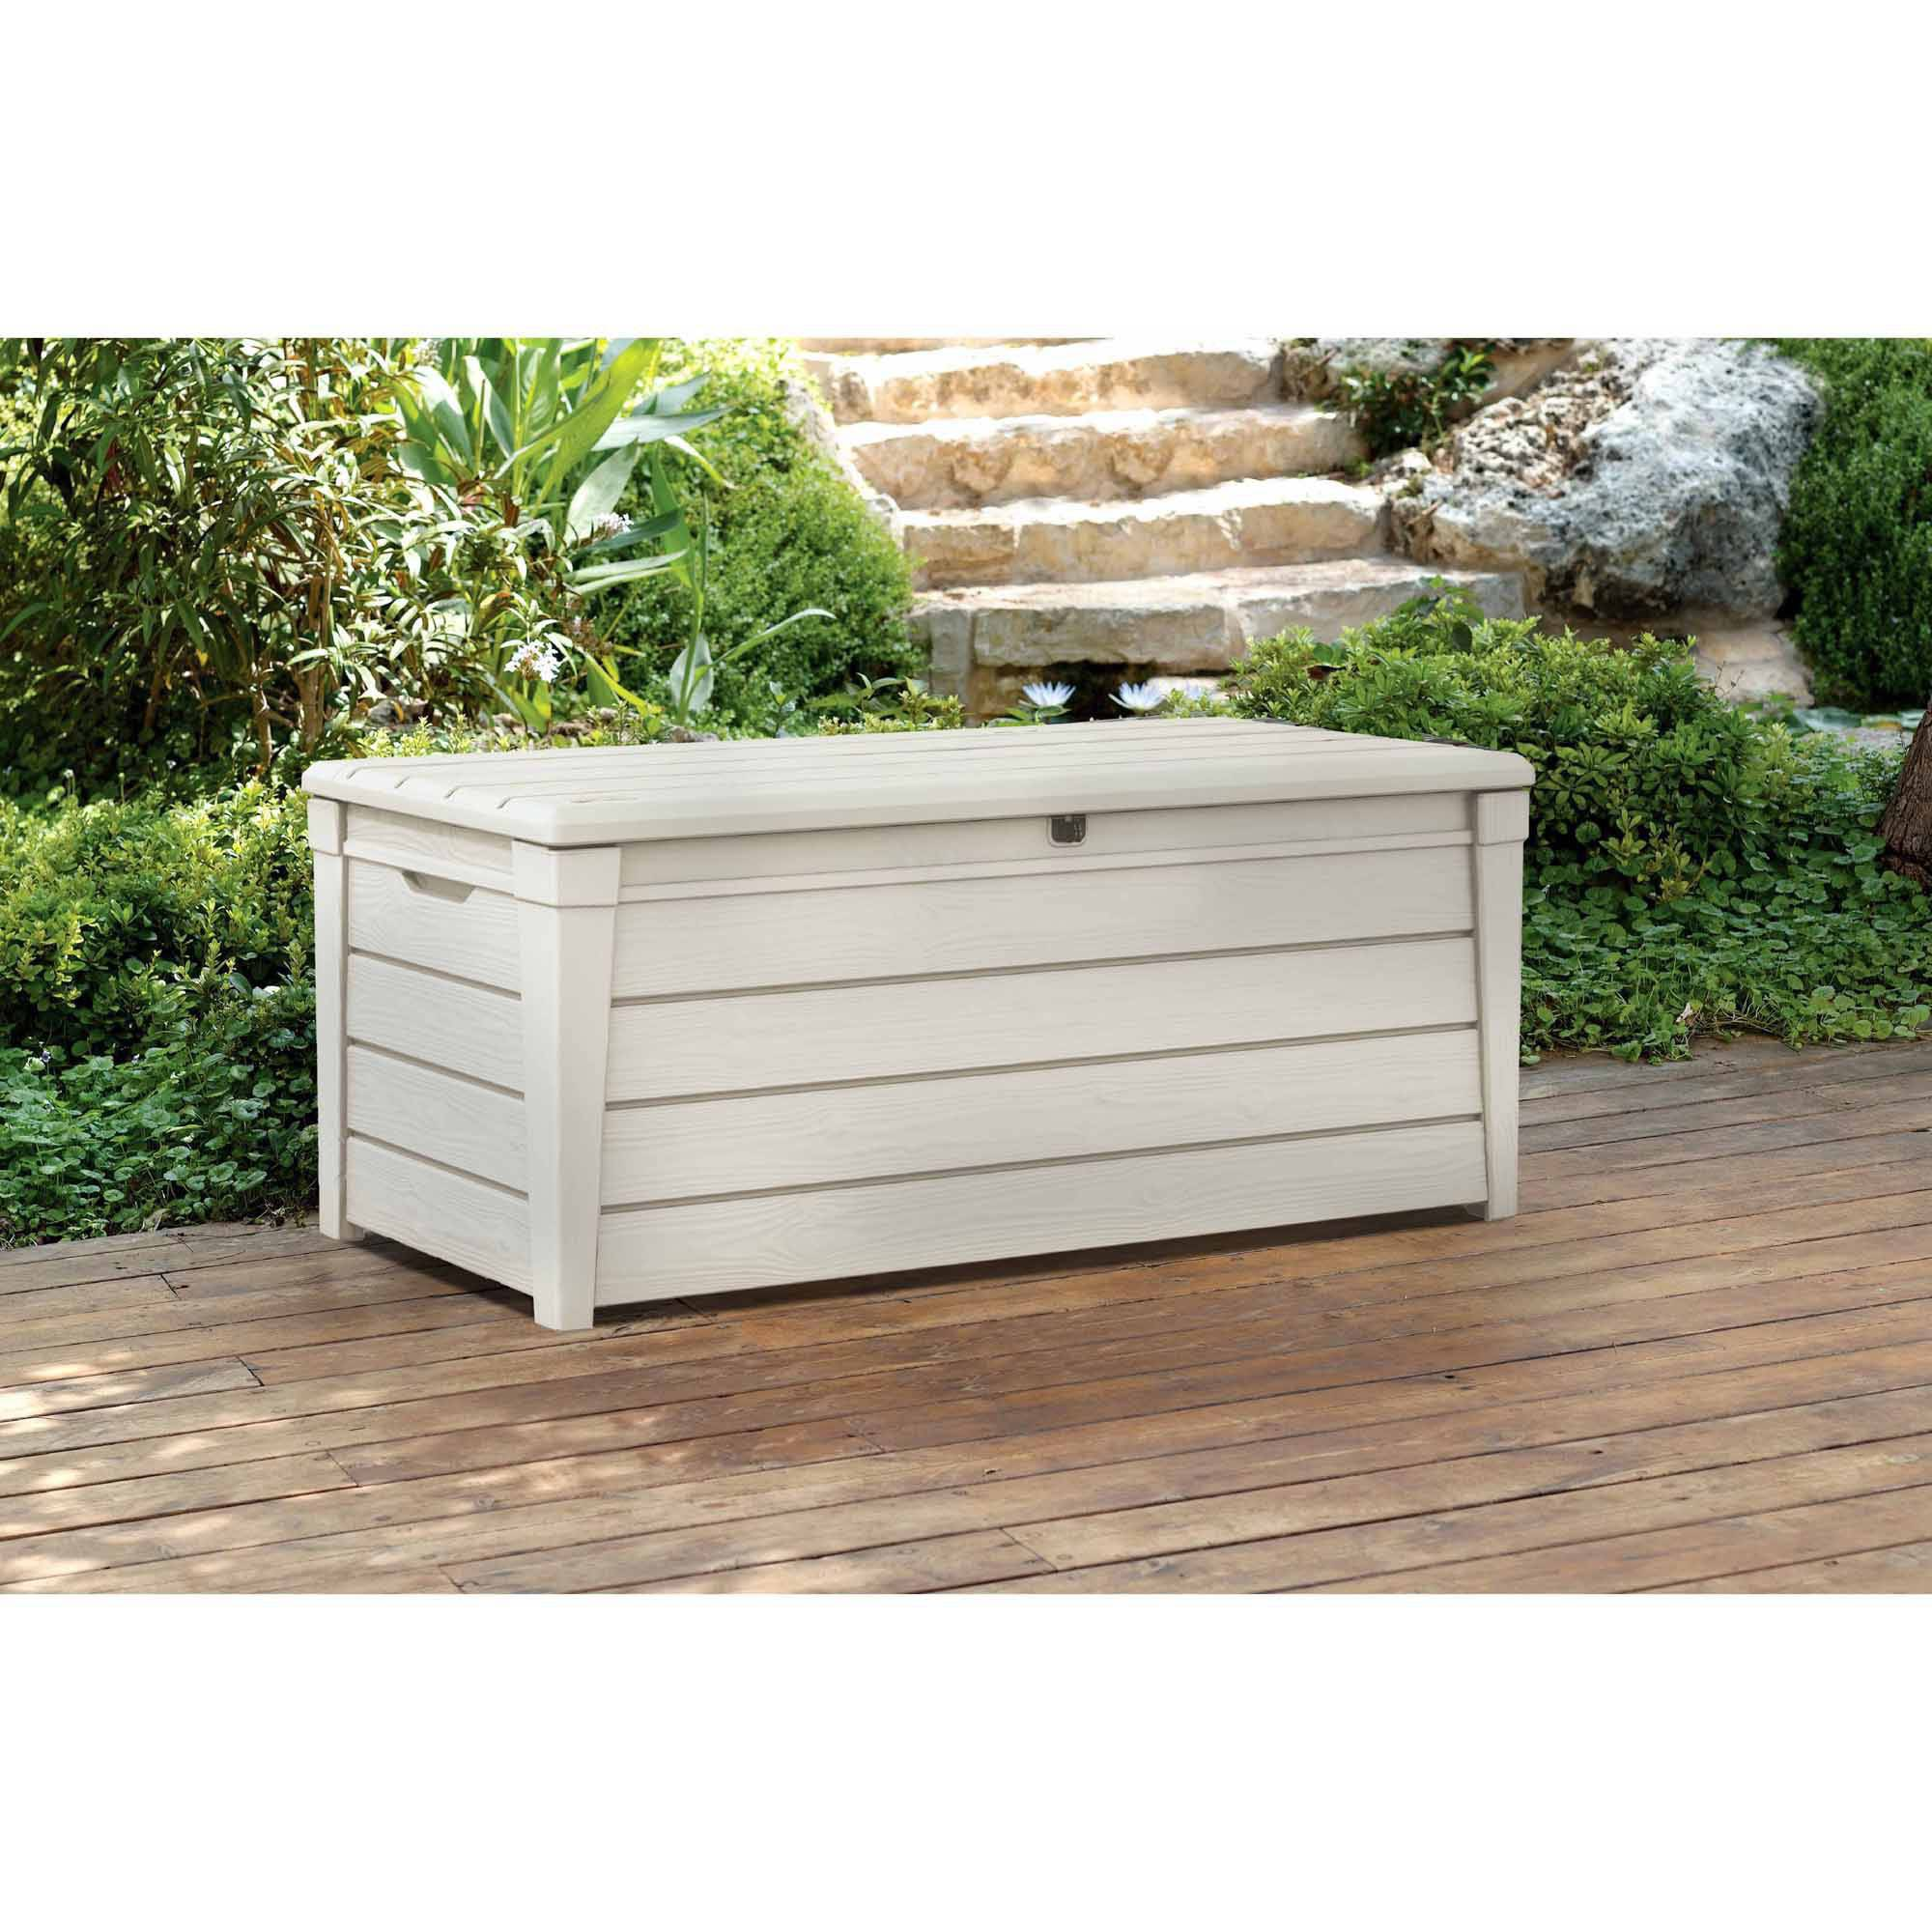 Keter Brightwood Outdoor Plastic Deck Box All Weather Resin Storage